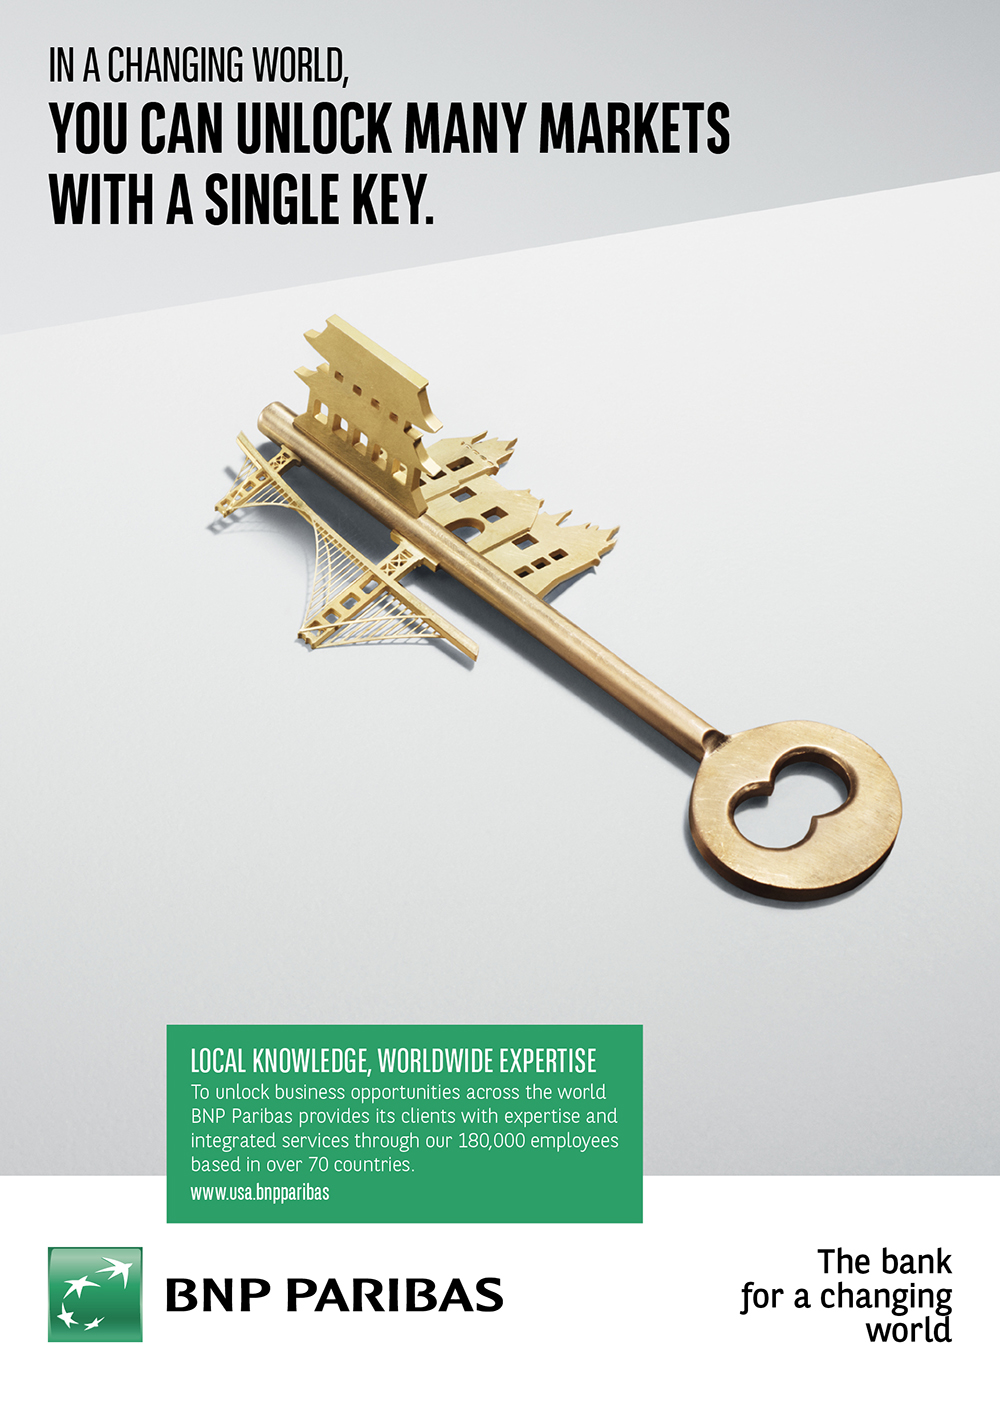 bnp-paribas-publicite-marketing-banque-in-a-changing-world-la-banque-un-monde-qui-change-2015-publicis-conseil-3